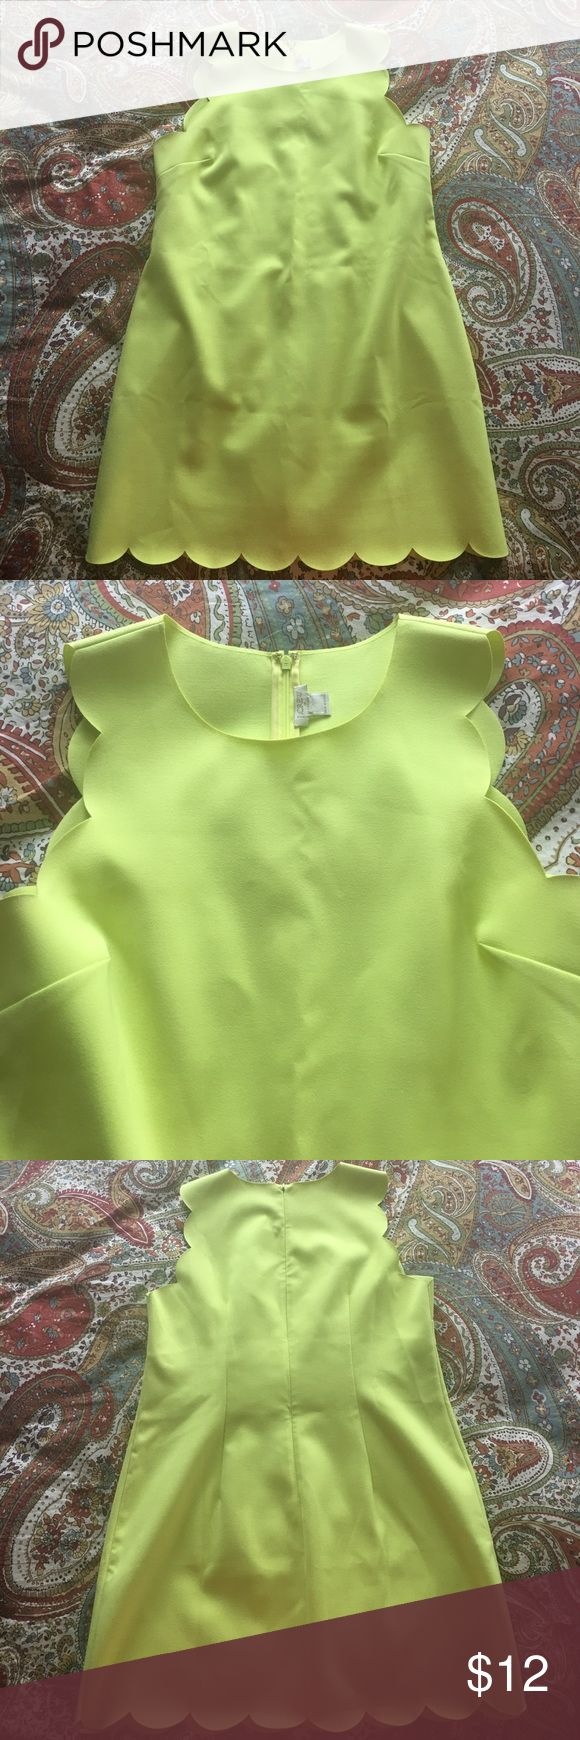 J crew scallop lime green dress Only worn 2 times! Great condition! Size 14 but size tag has been removed J. Crew Factory Dresses Mini